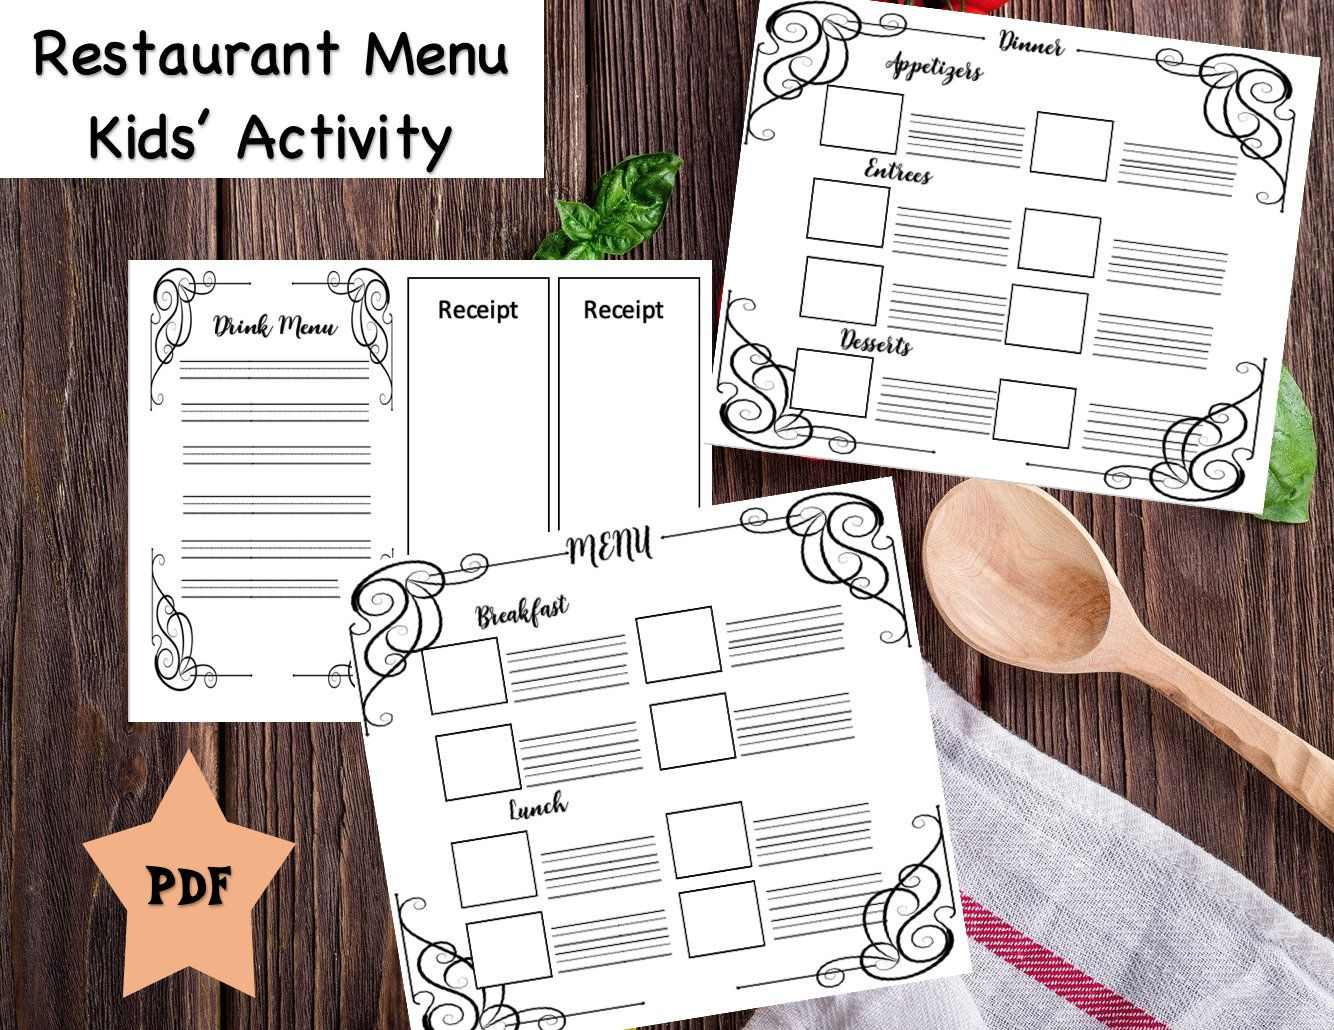 Restaurant Menu And Receipt Template Great Creative Writing Etsy In 2021 Creative Writing Activities Creative Writing Childrens Reward Charts